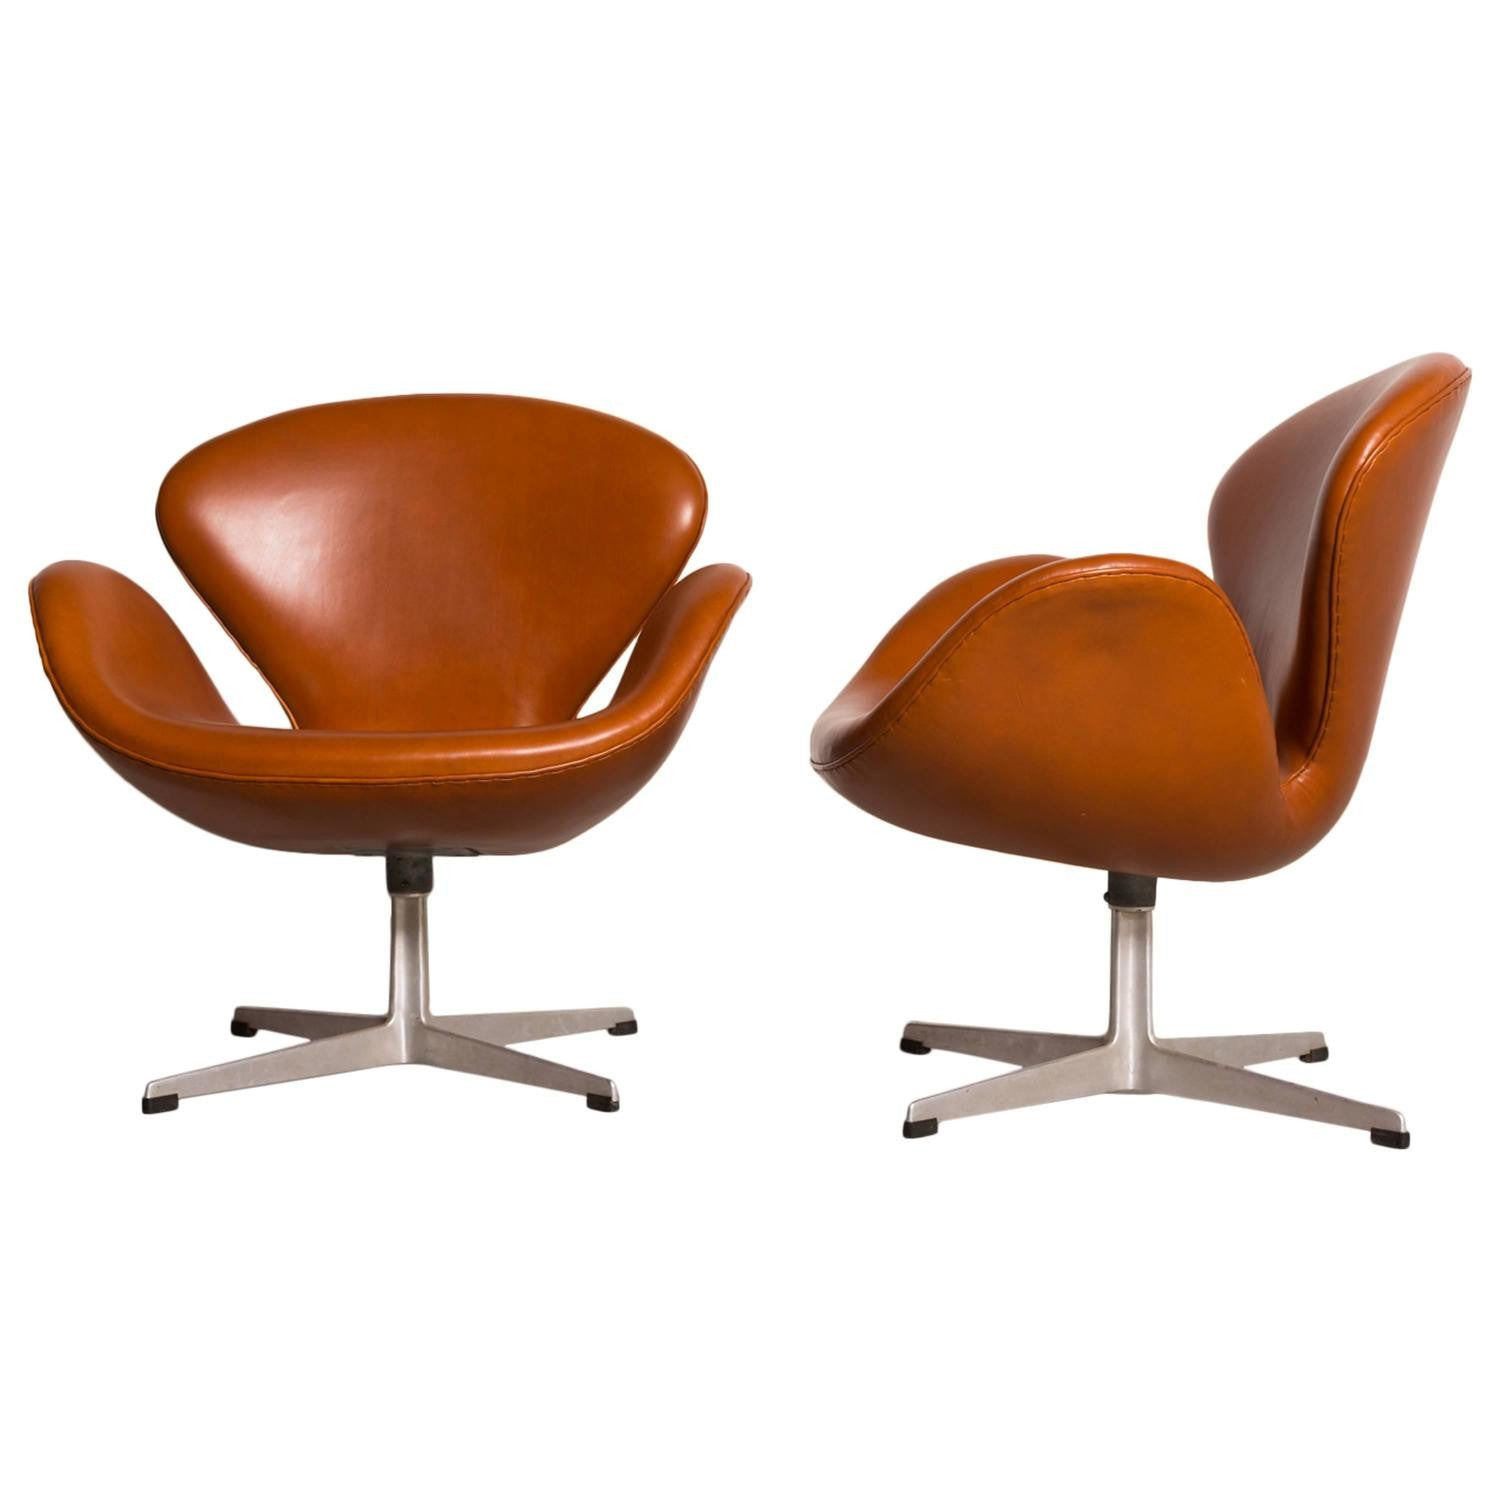 Early Arne Jacobsen Swan Chairs for Fritz Hansen